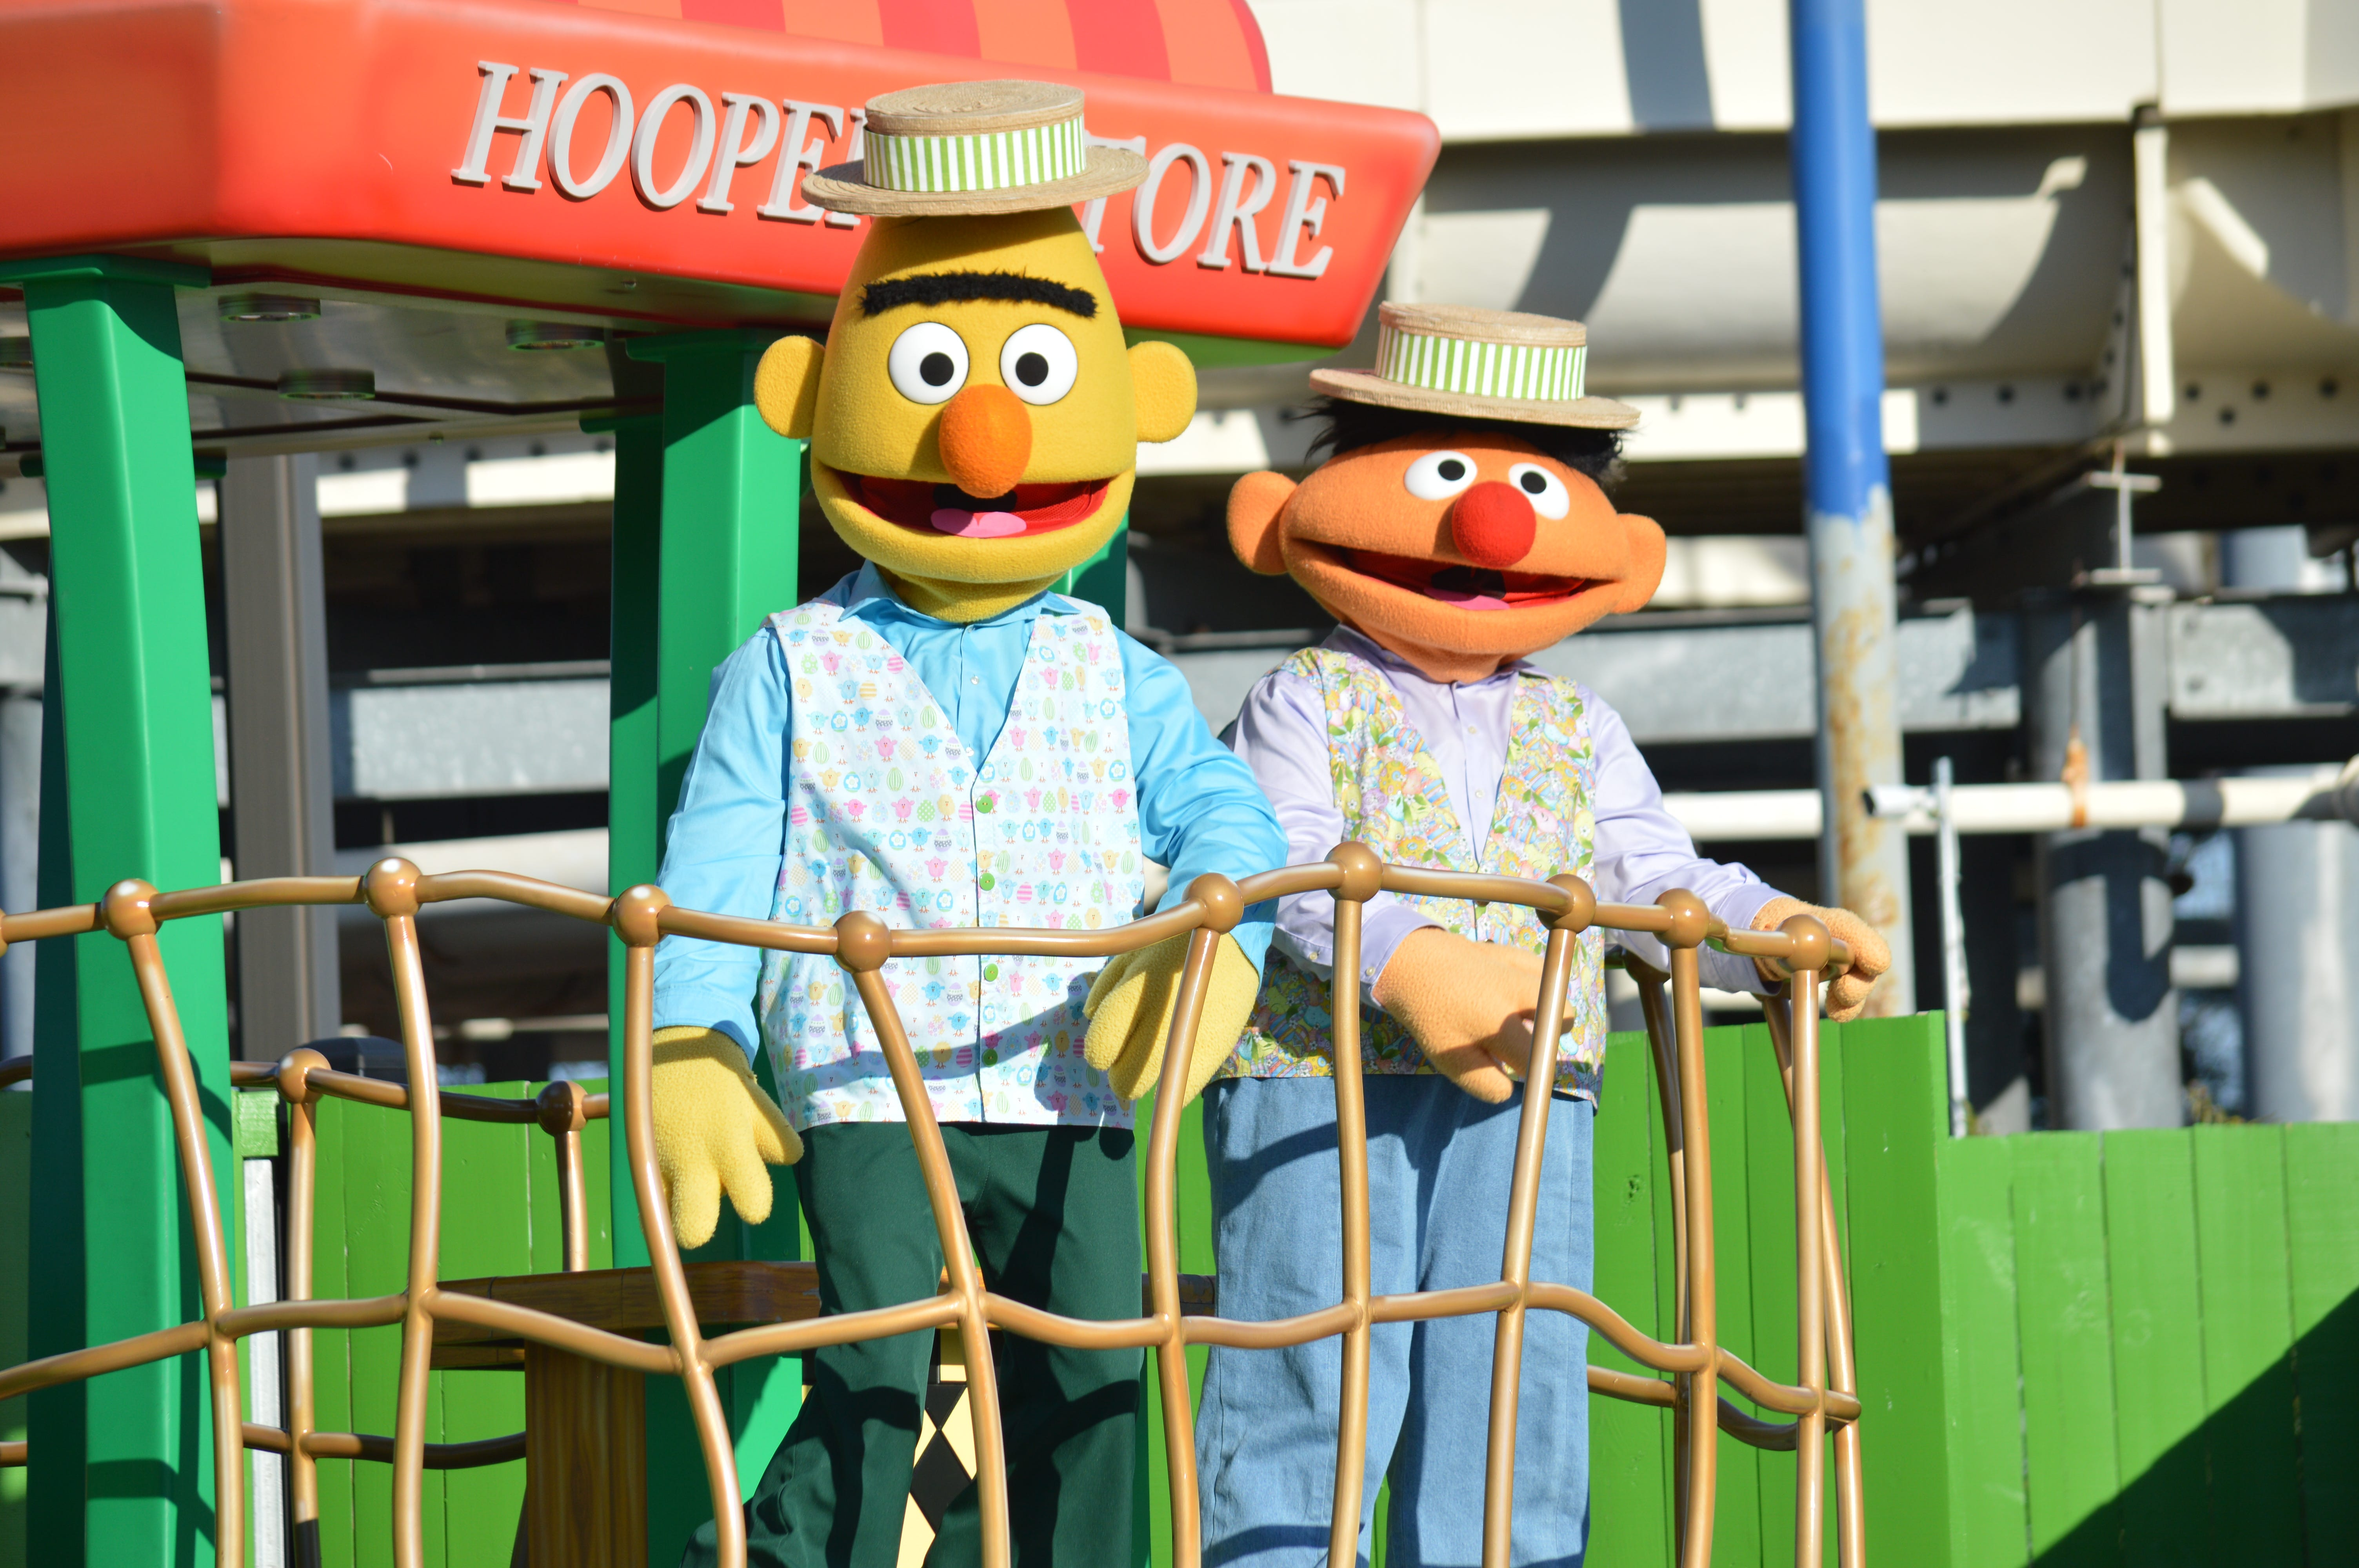 Guests can take photos with various Sesame Street characters at Sesame Place in Langhorne this season.